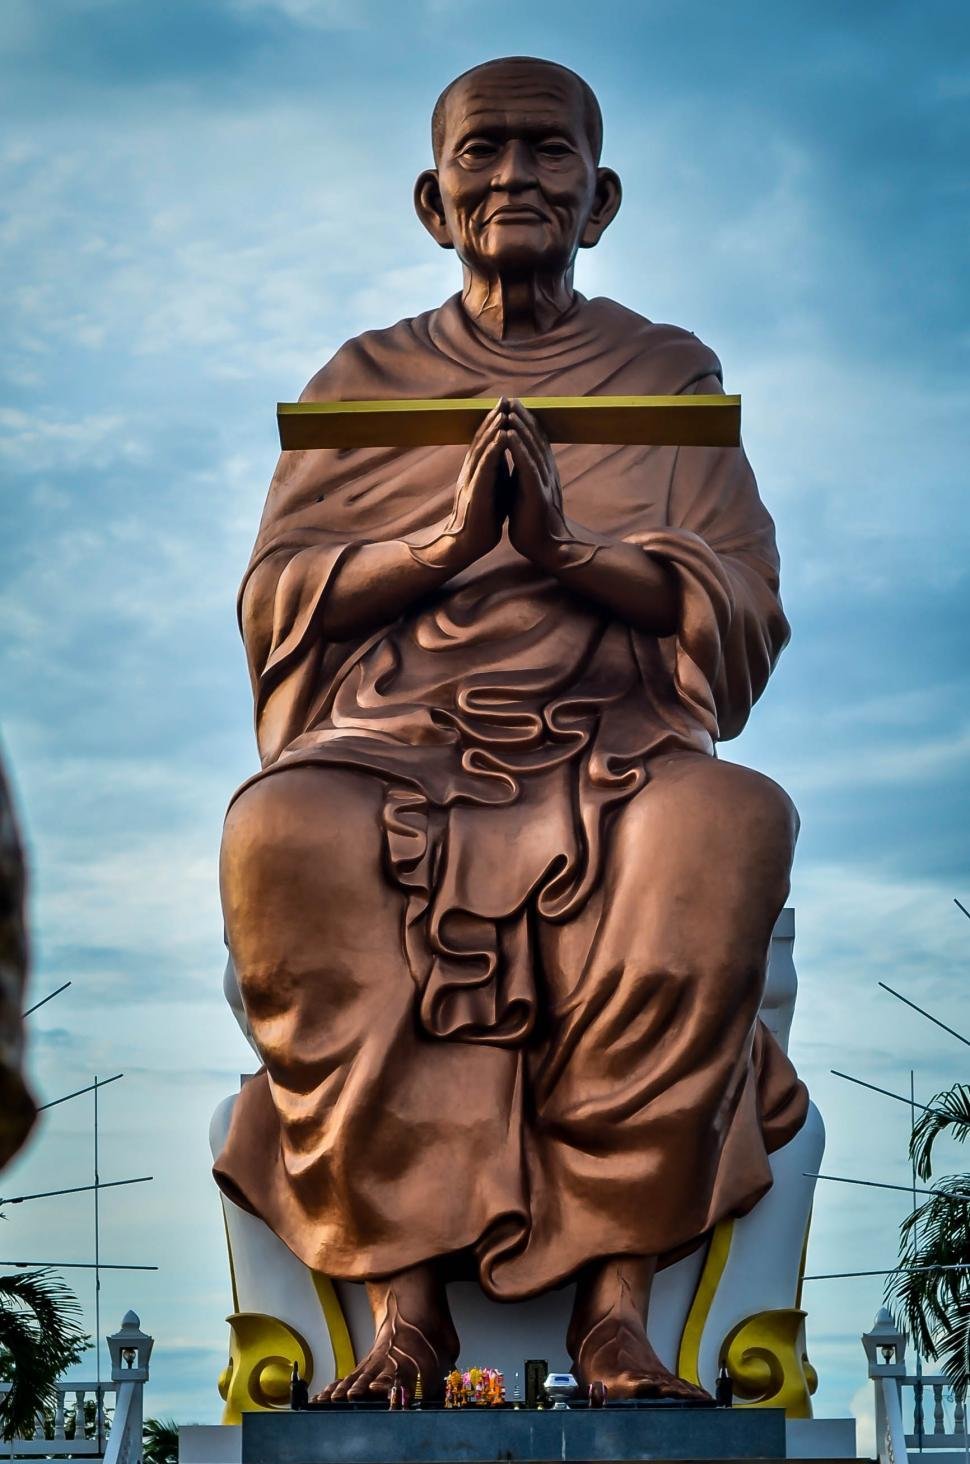 Download Free Stock Photo of Sculpture of Monk in Thailand